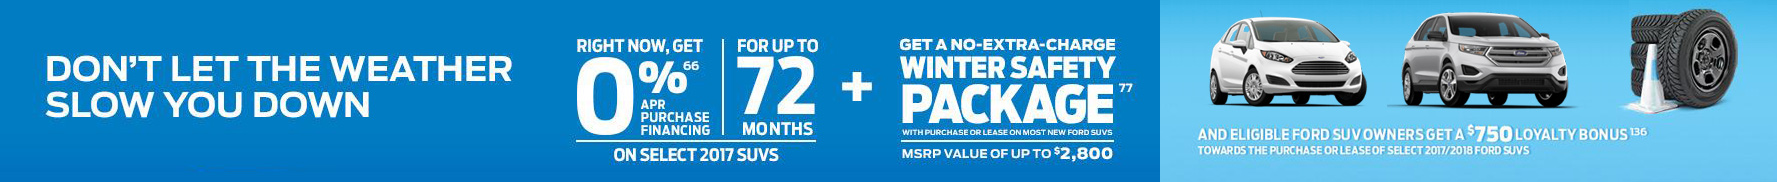 winter safety packages